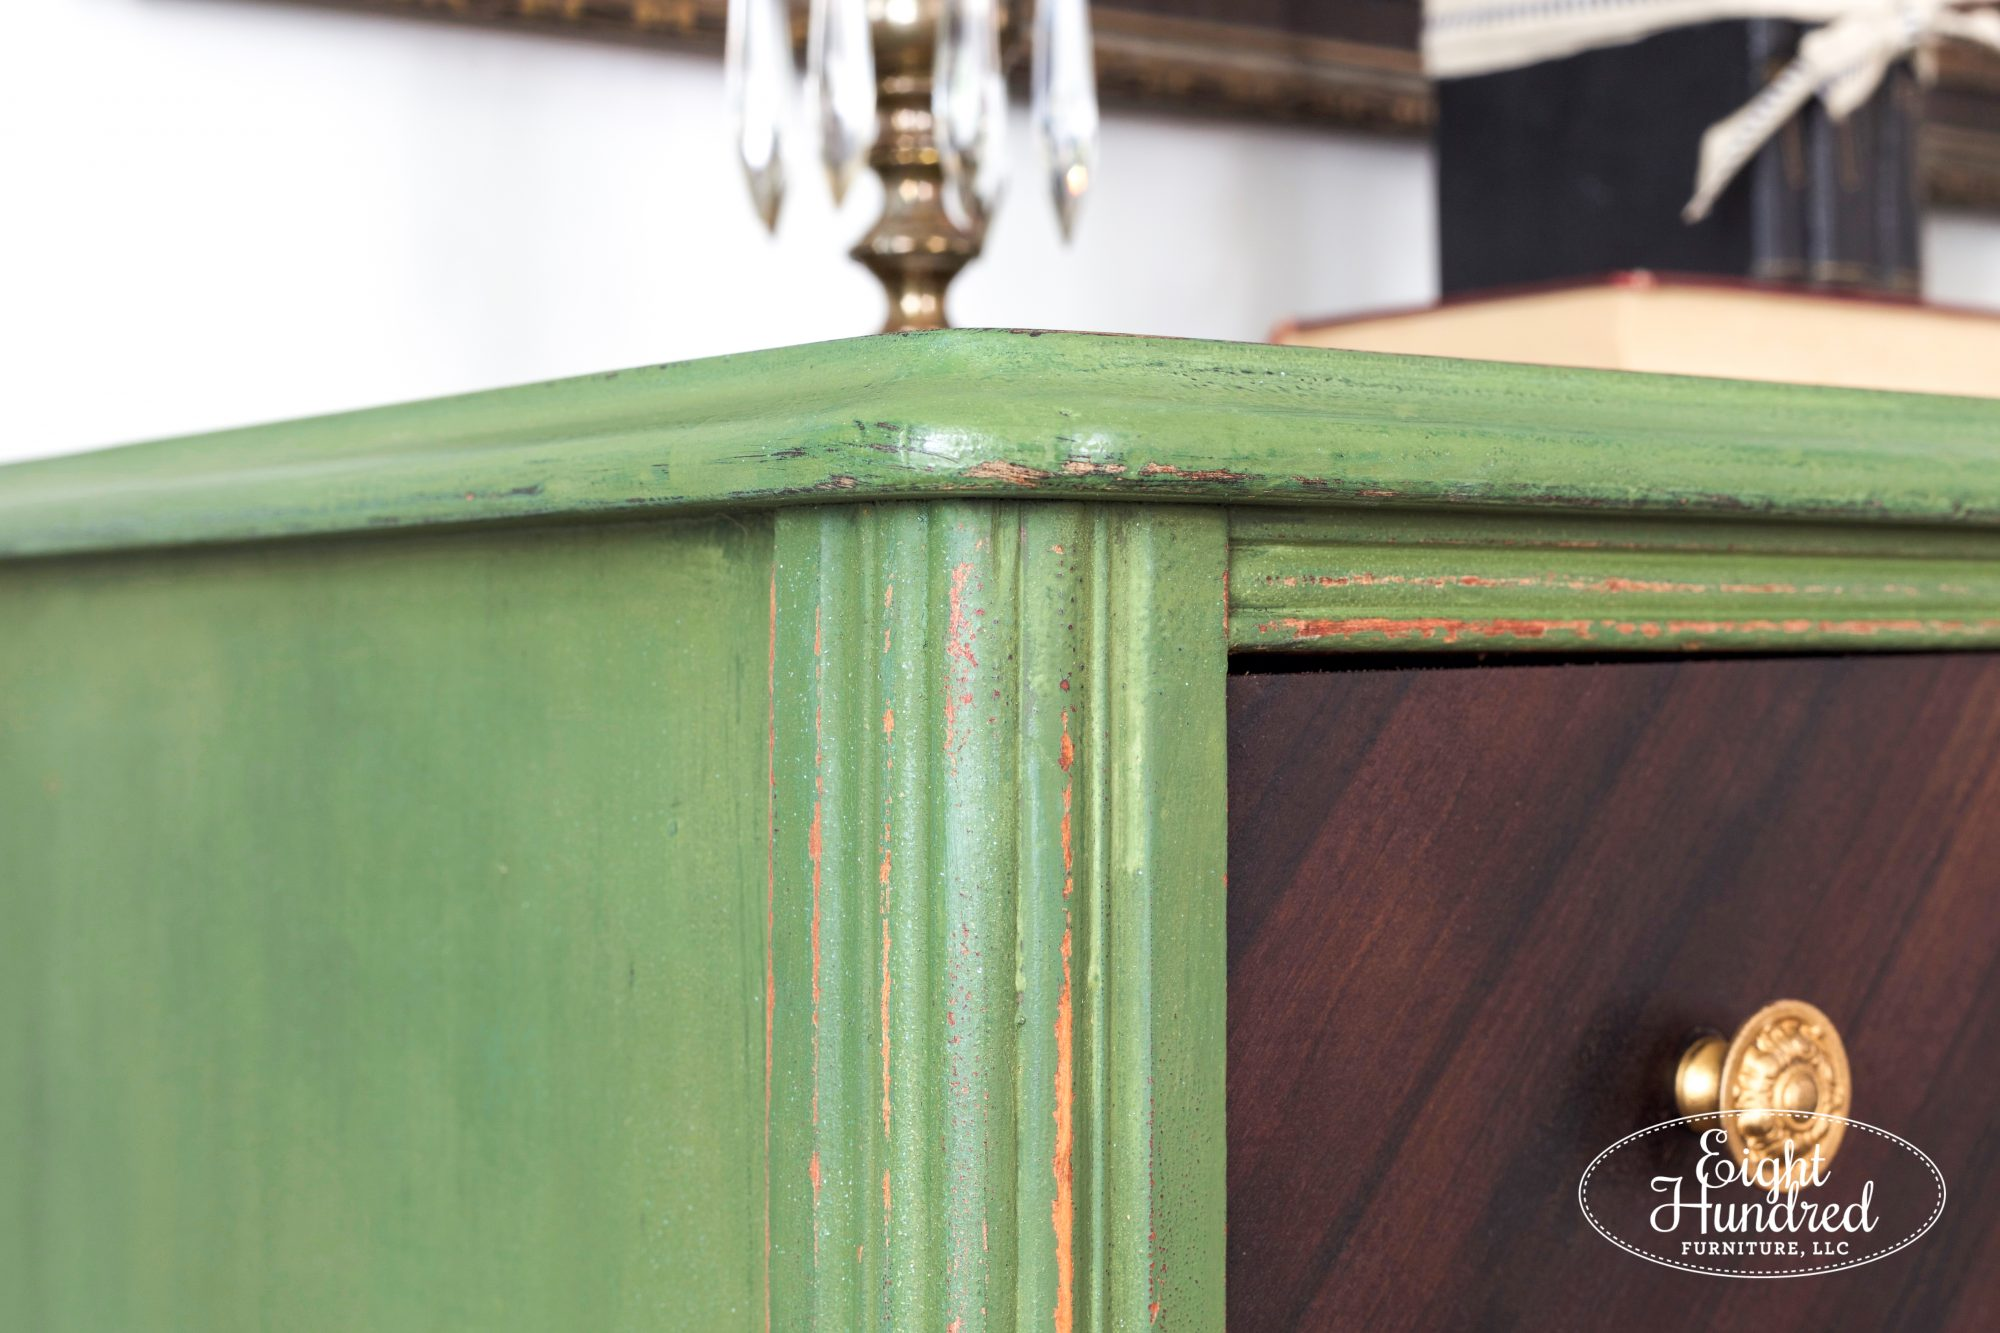 Gorgeous texture created with Boxwood Milk Paint by Eight Hundred Furniture